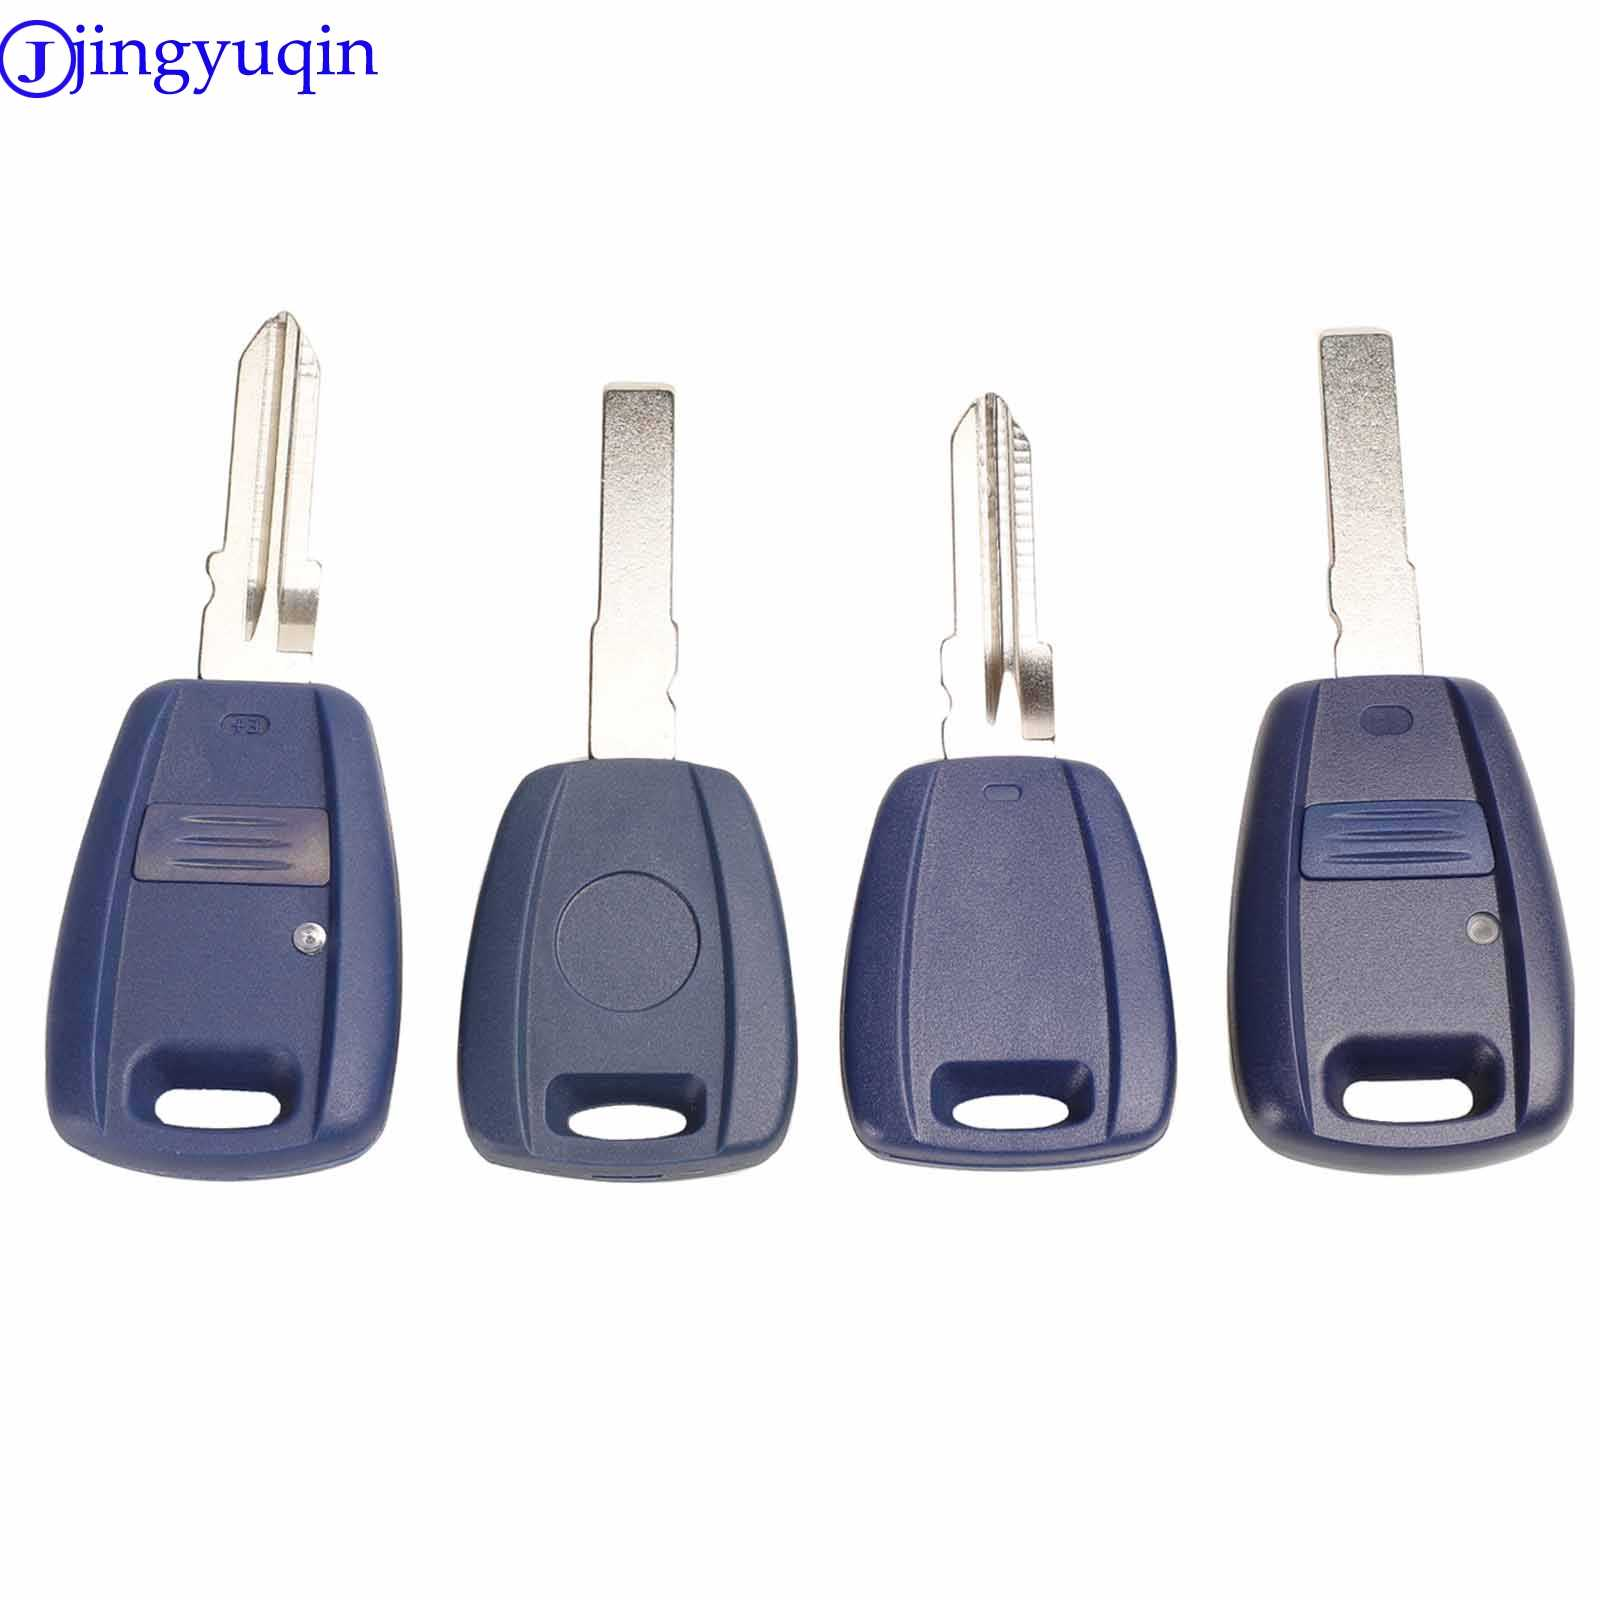 Jingyuqin 10P Transponder Ignition Auto Sleutel Zonder Chip Cover Case Voor Fiat Punto Punto Seicento Met Ongesneden Blad GT15R